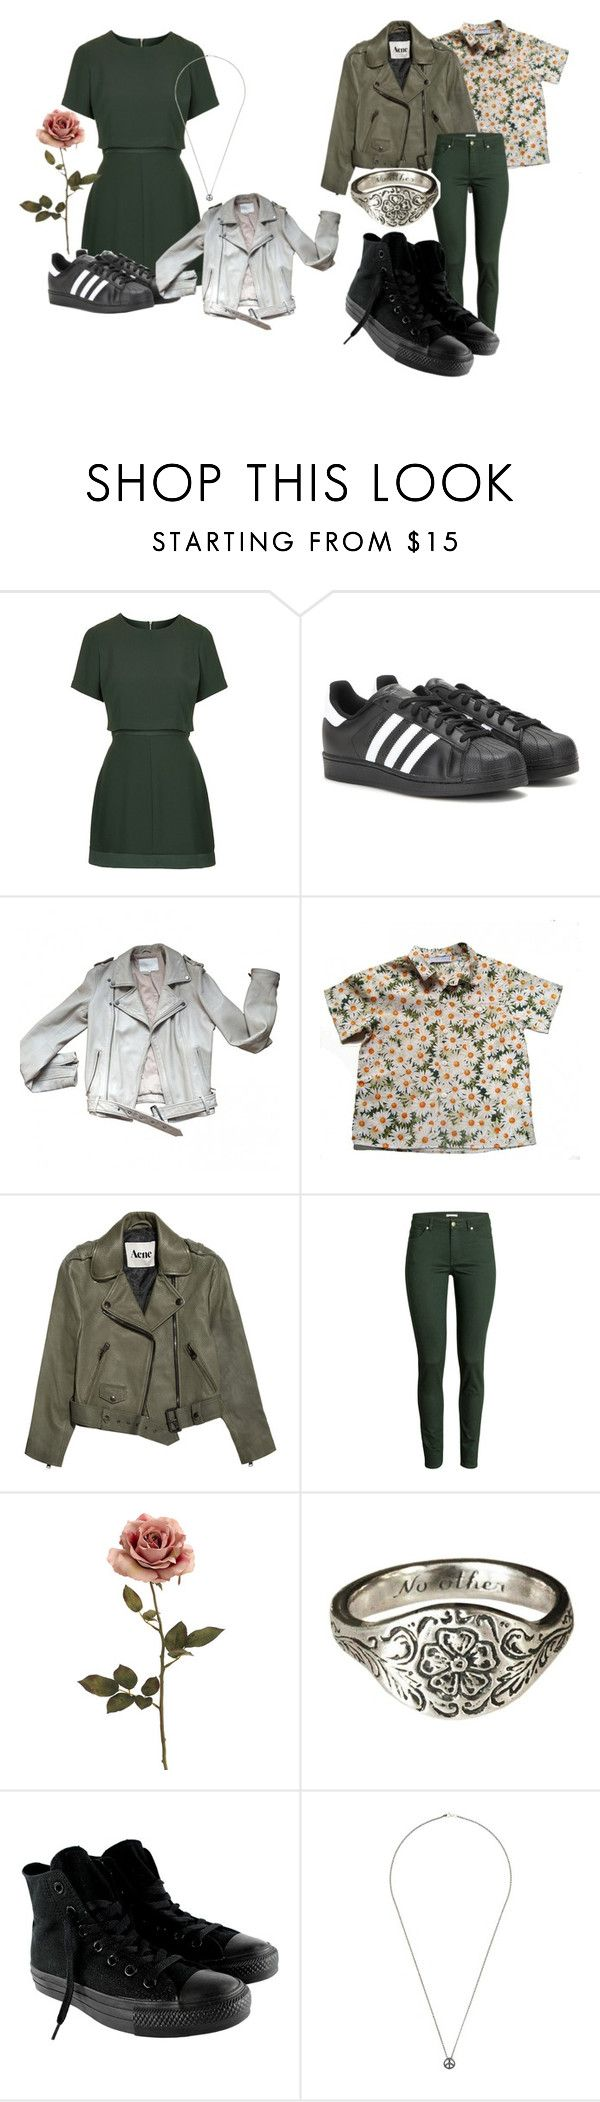 """Green"" by freedom2095 ❤ liked on Polyvore featuring Topshop, adidas, Maje, Cacharel, Acne Studios, H&M, Talon, Converse and Rosa Maria"